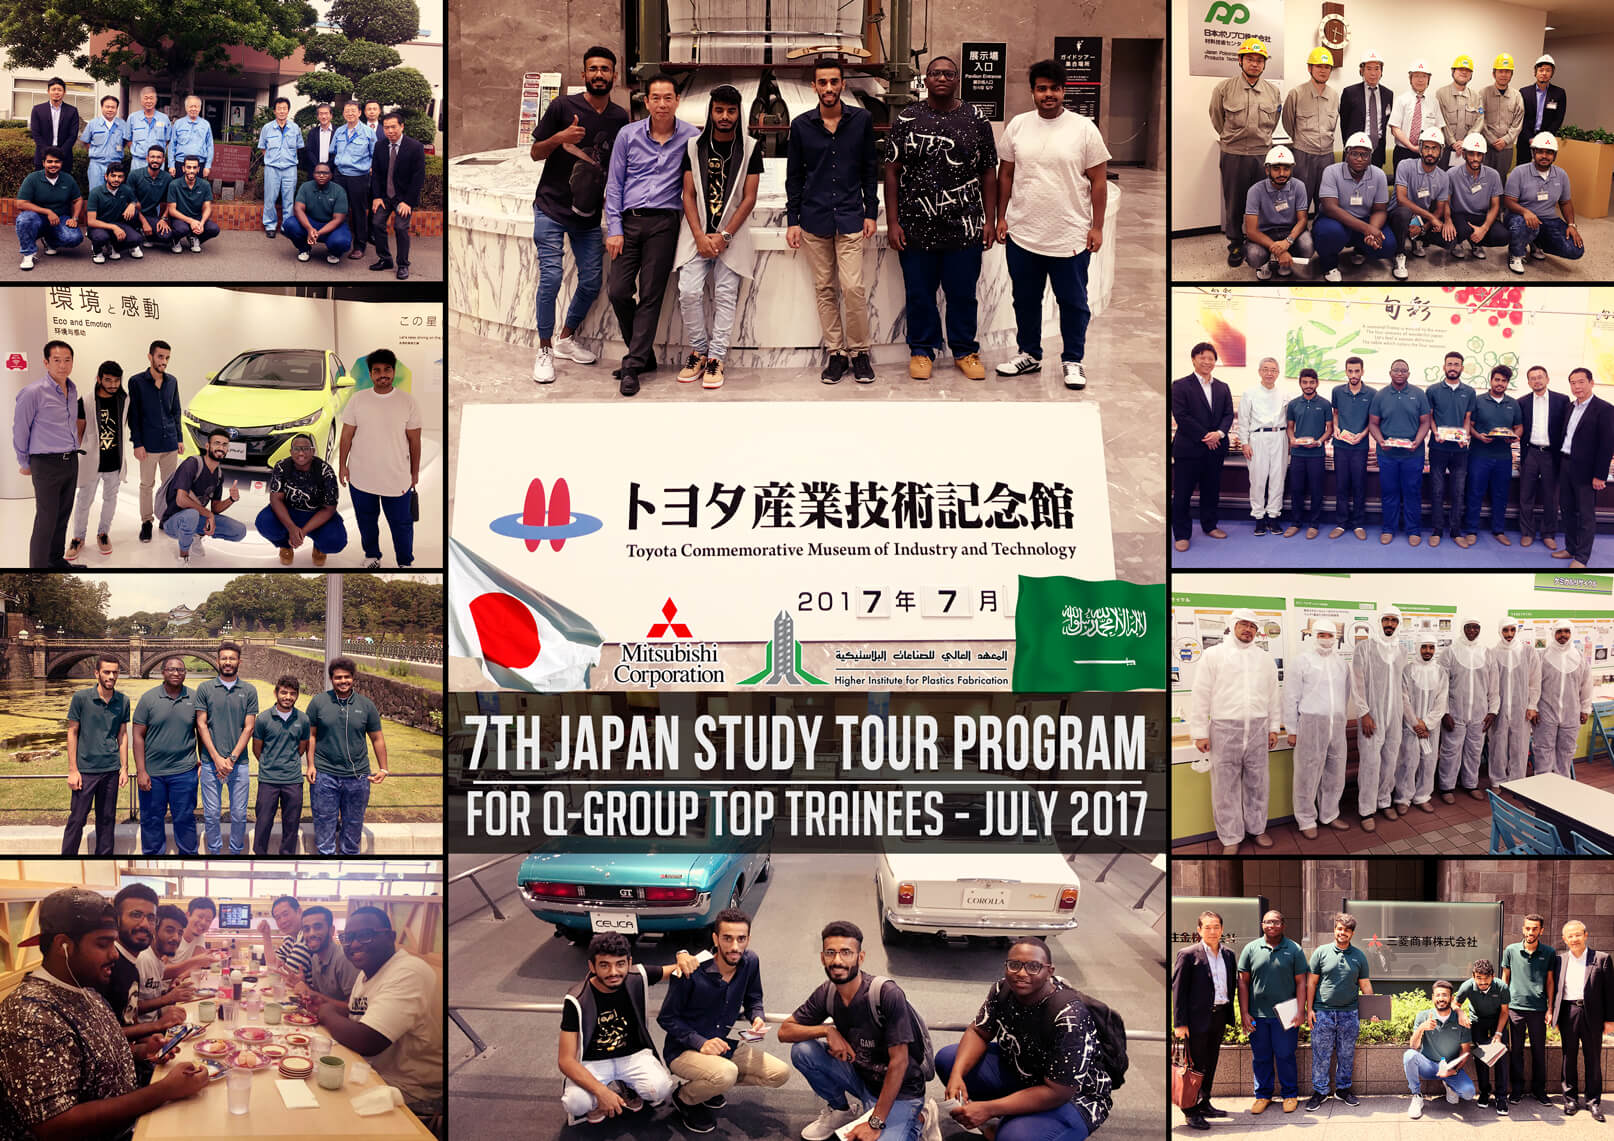 Japan Study Tour Program for HIPF Trainees